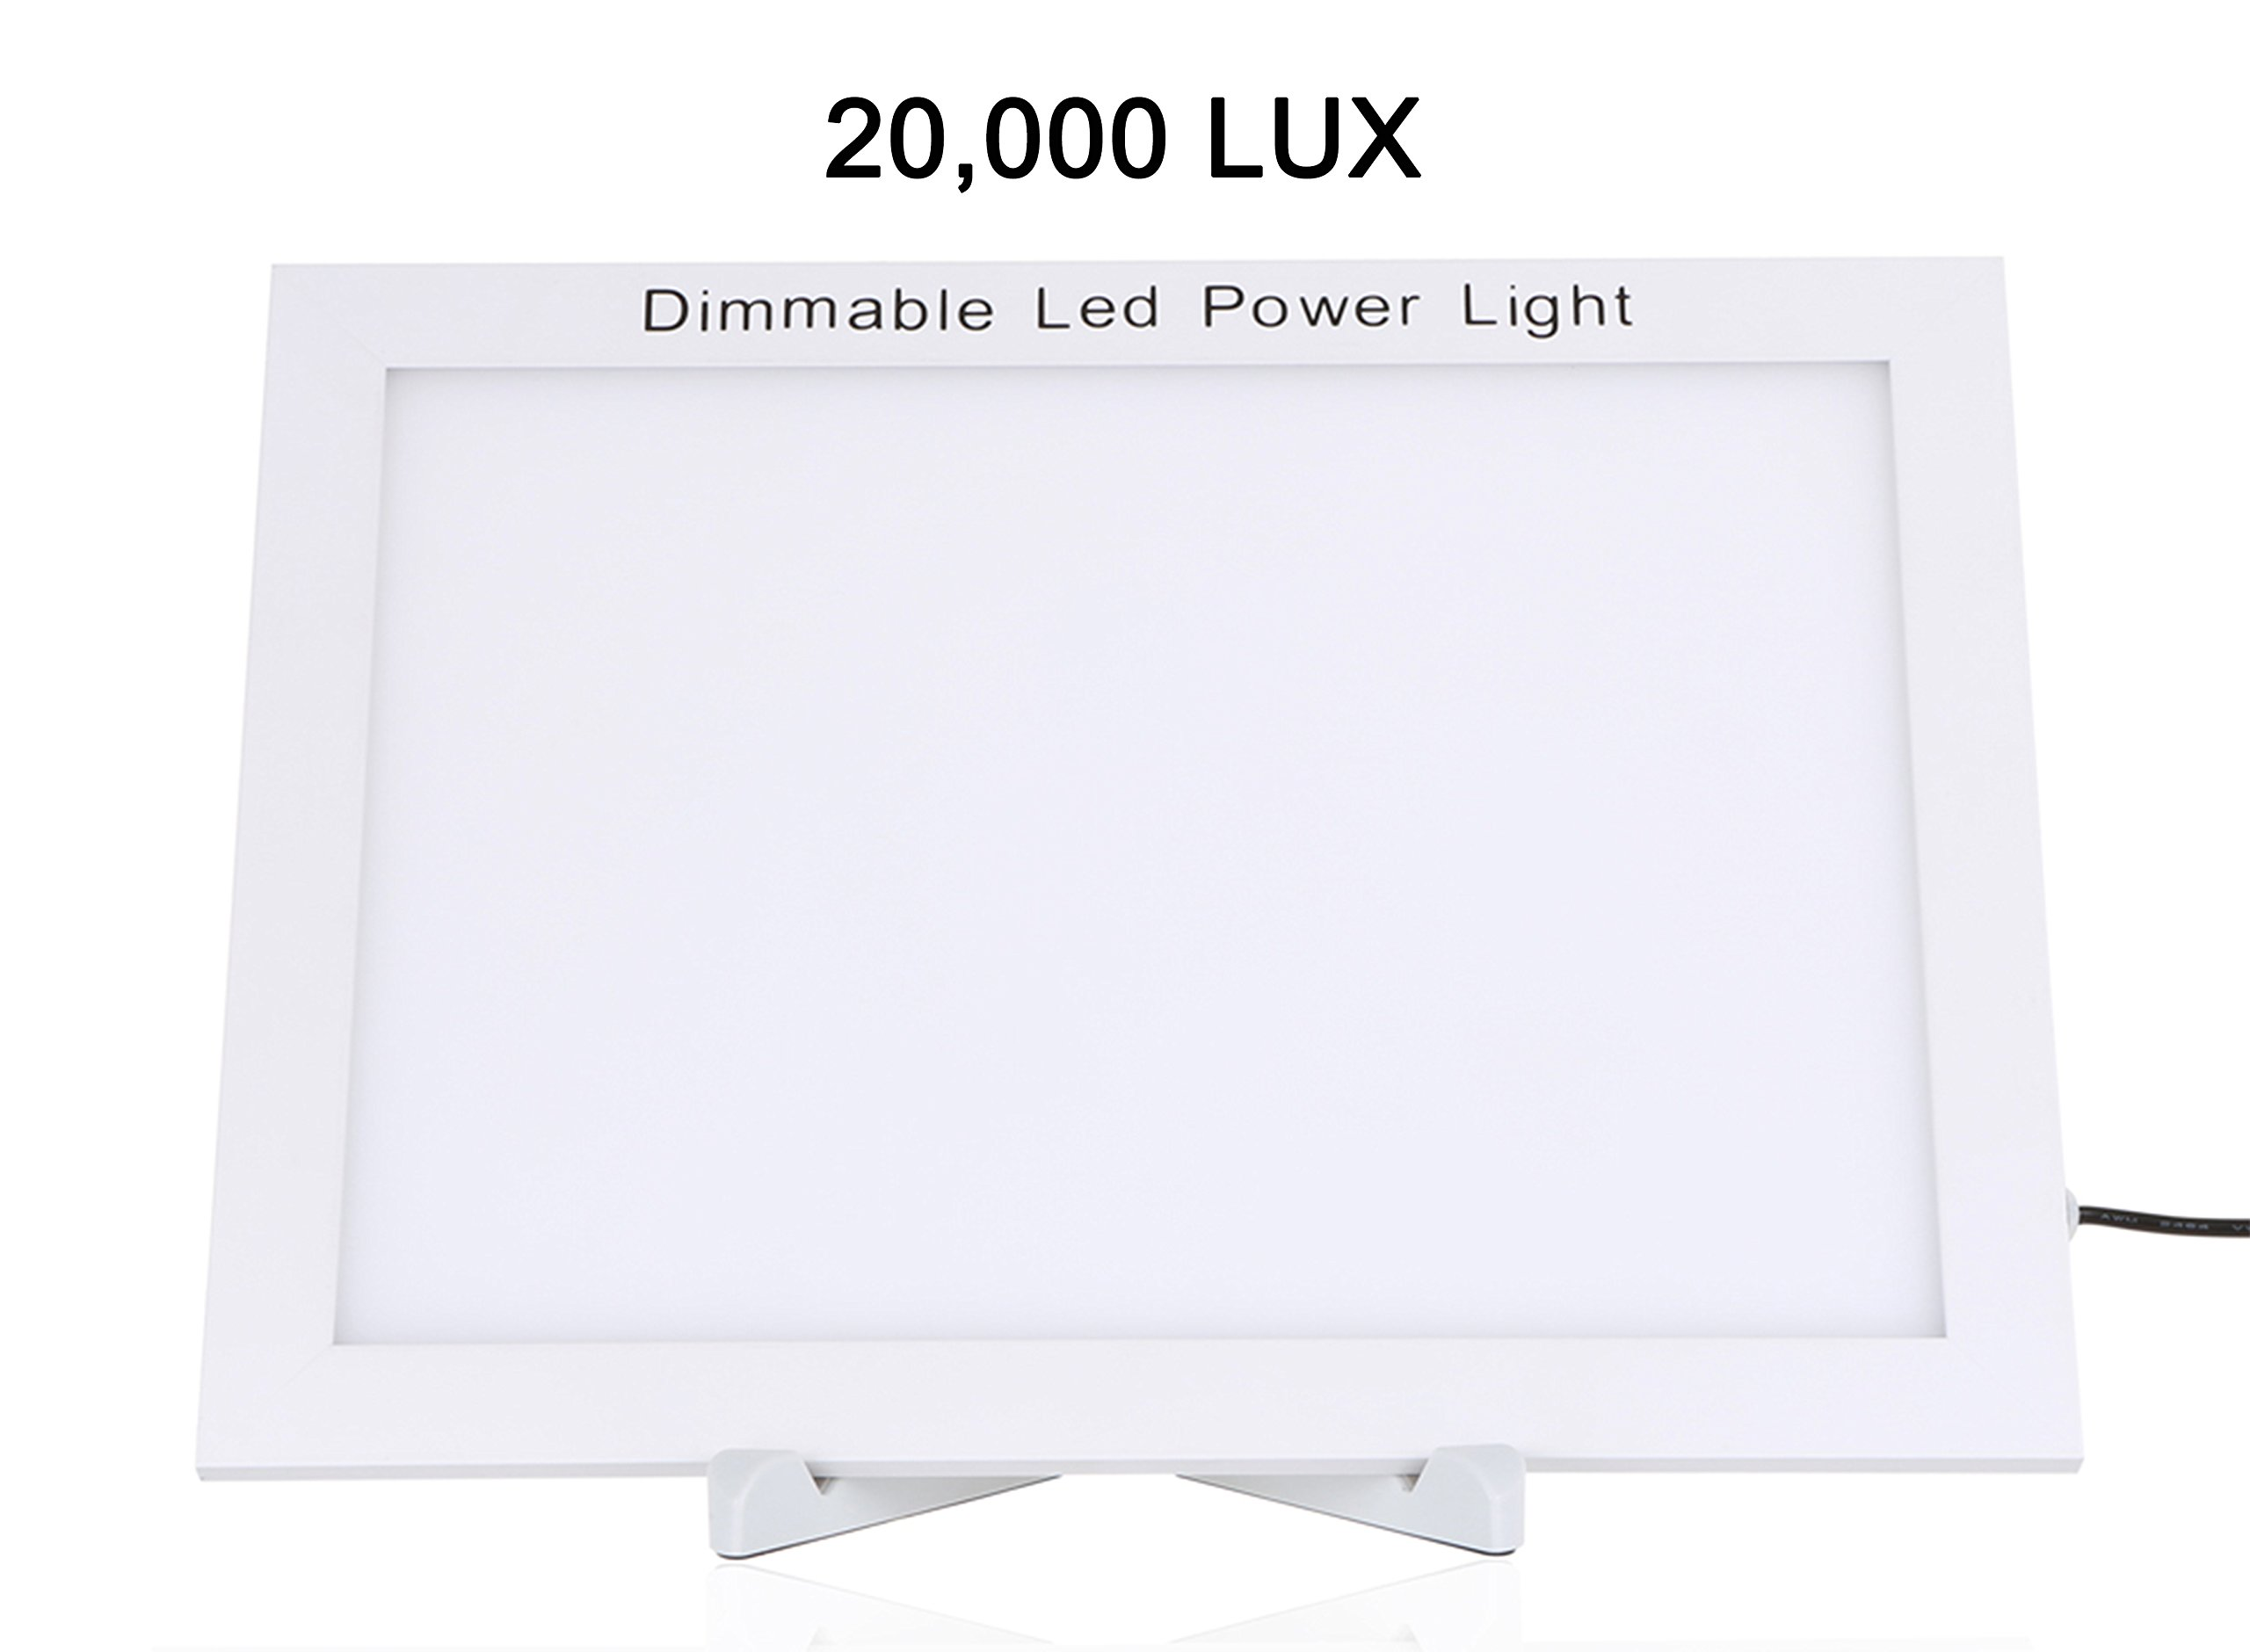 Portable 20,000 LUX Dimmable LED Bright White Full Spectrum Light Therapy Energy Daylight Lamp Therapy Light Box,Fatigue Concerntration Improve 5.5 X7.8 Inch Light Area w Simple Stand